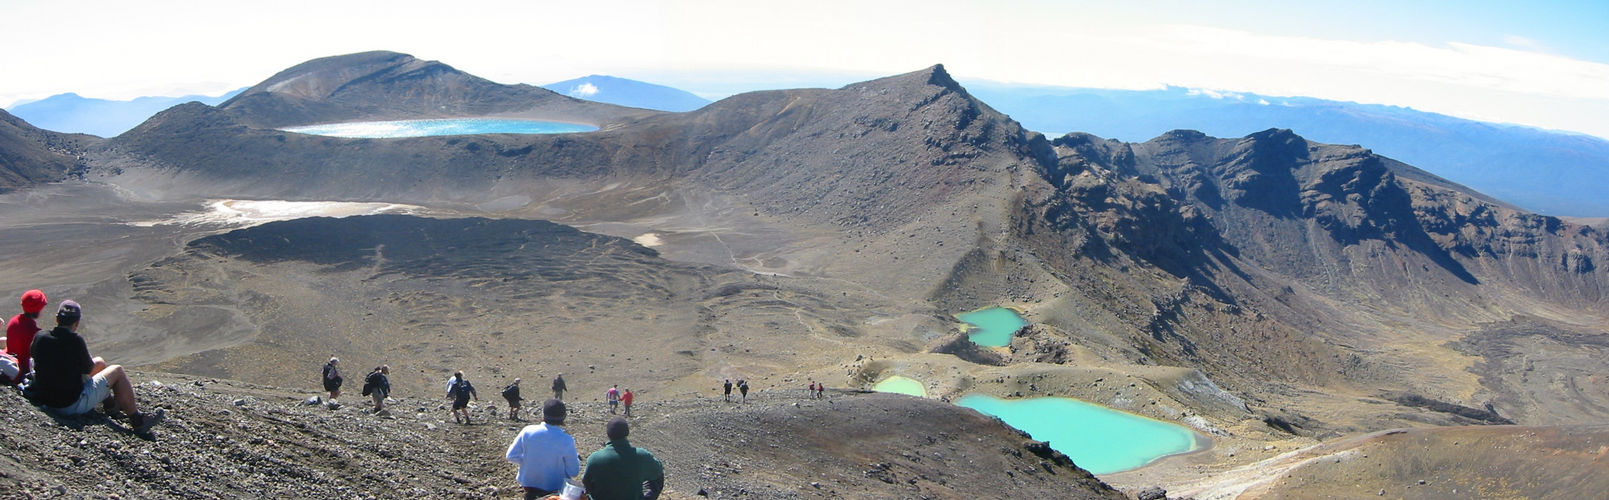 Tongariro National Park Hotels